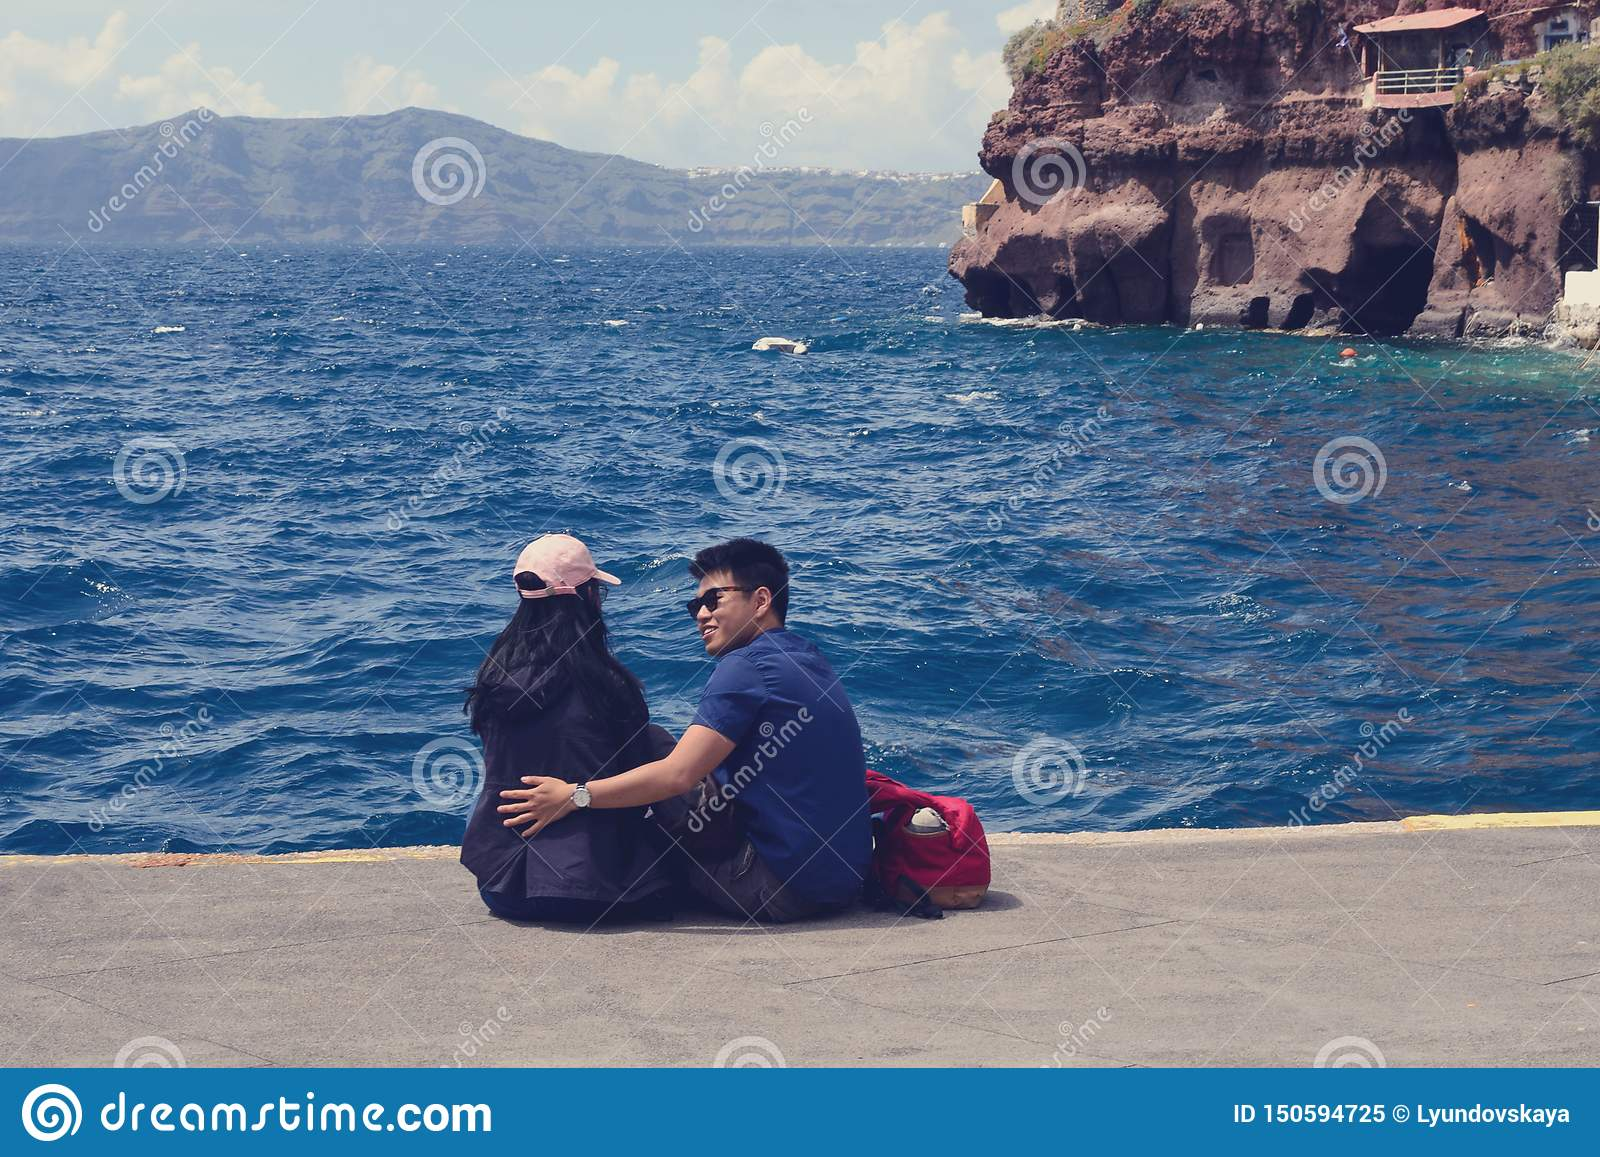 A young Chinese couple in love is sitting in the old port of the Greek city of Fira on the island of Santorini.